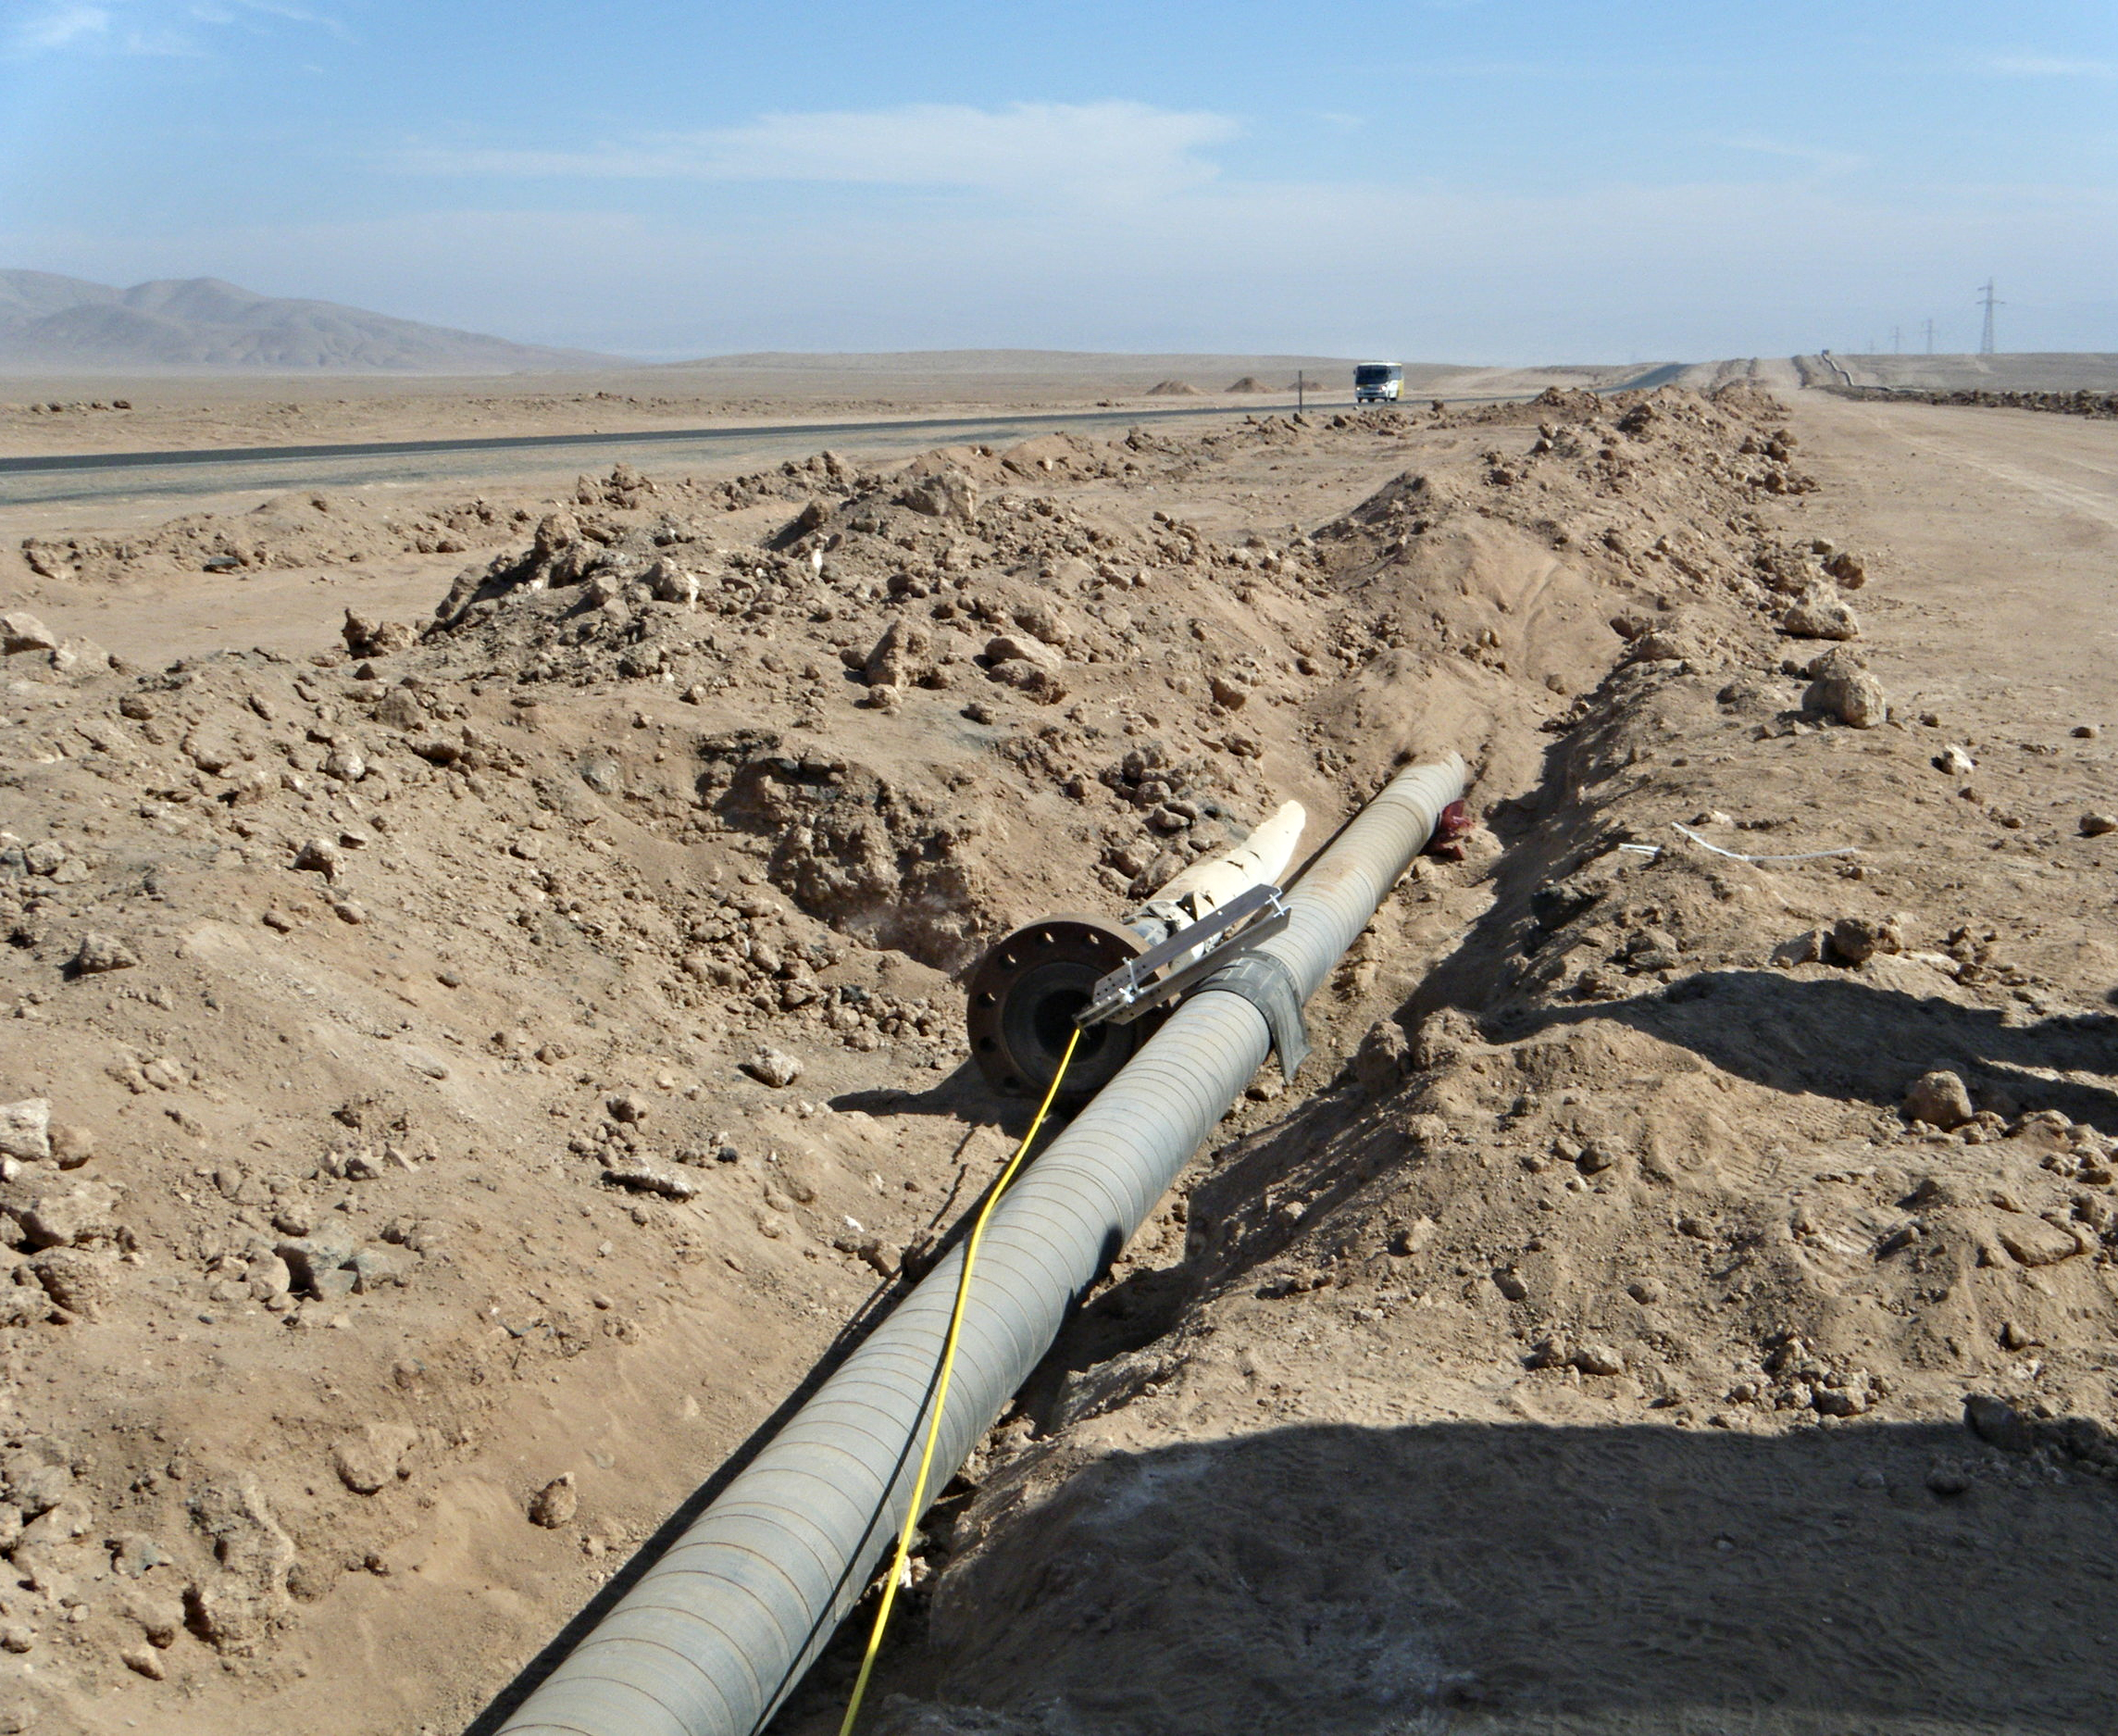 Escondido Pipeline being inspected by the Versatrax 150 Crawler